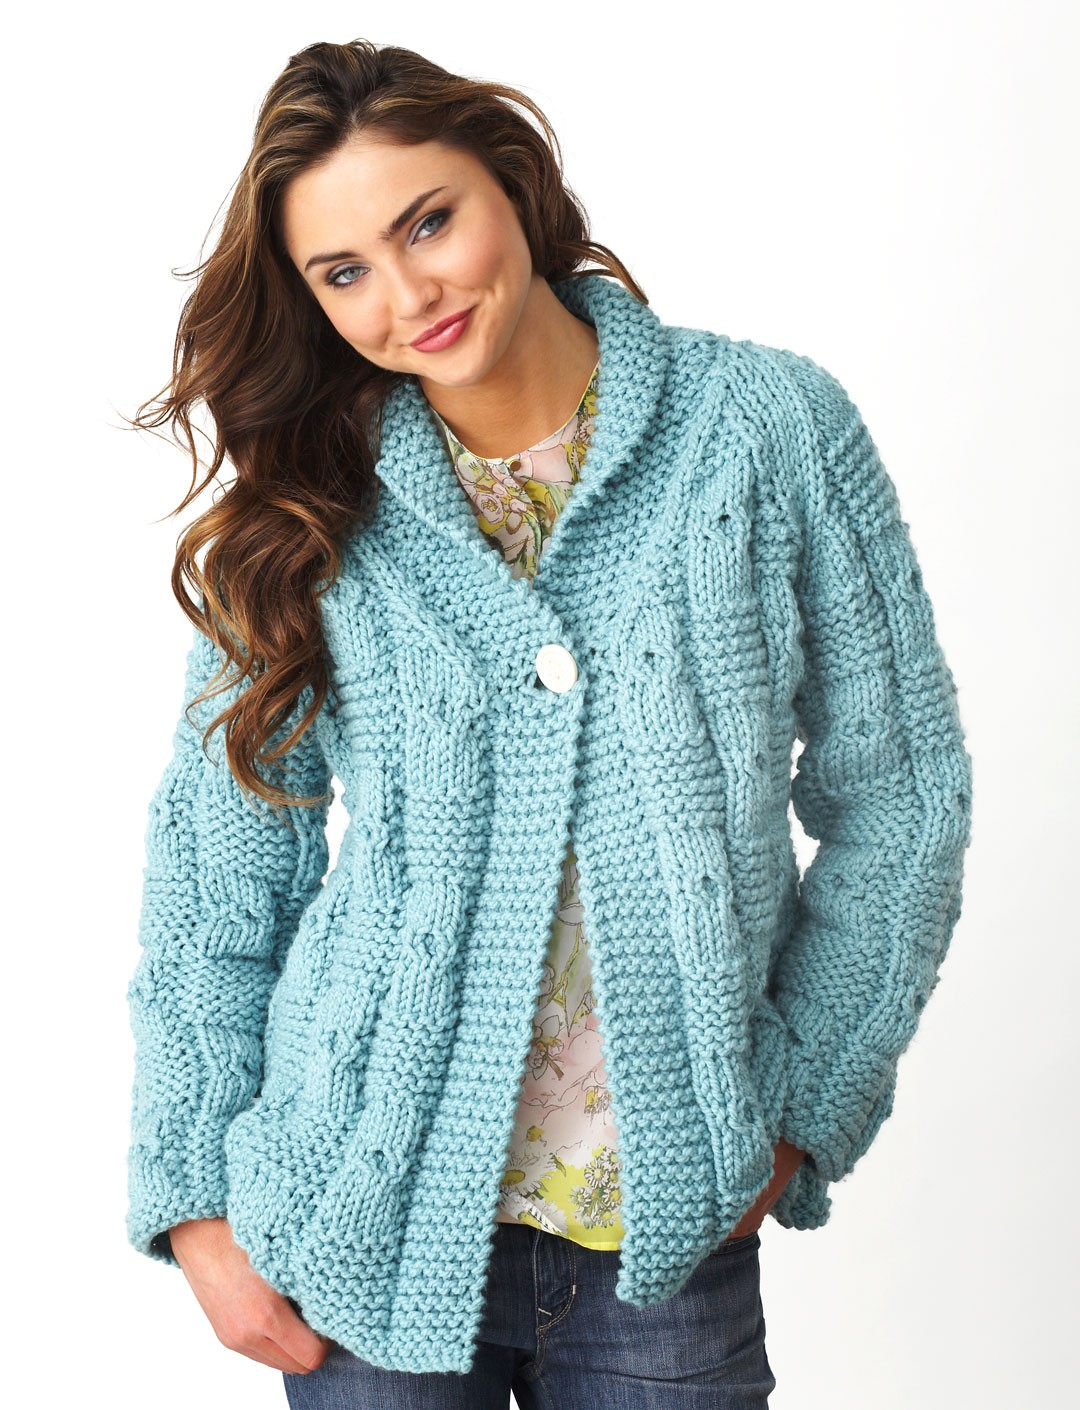 Knitting Cardigan Design : Bernat textured checks cardigan knit pattern yarnspirations